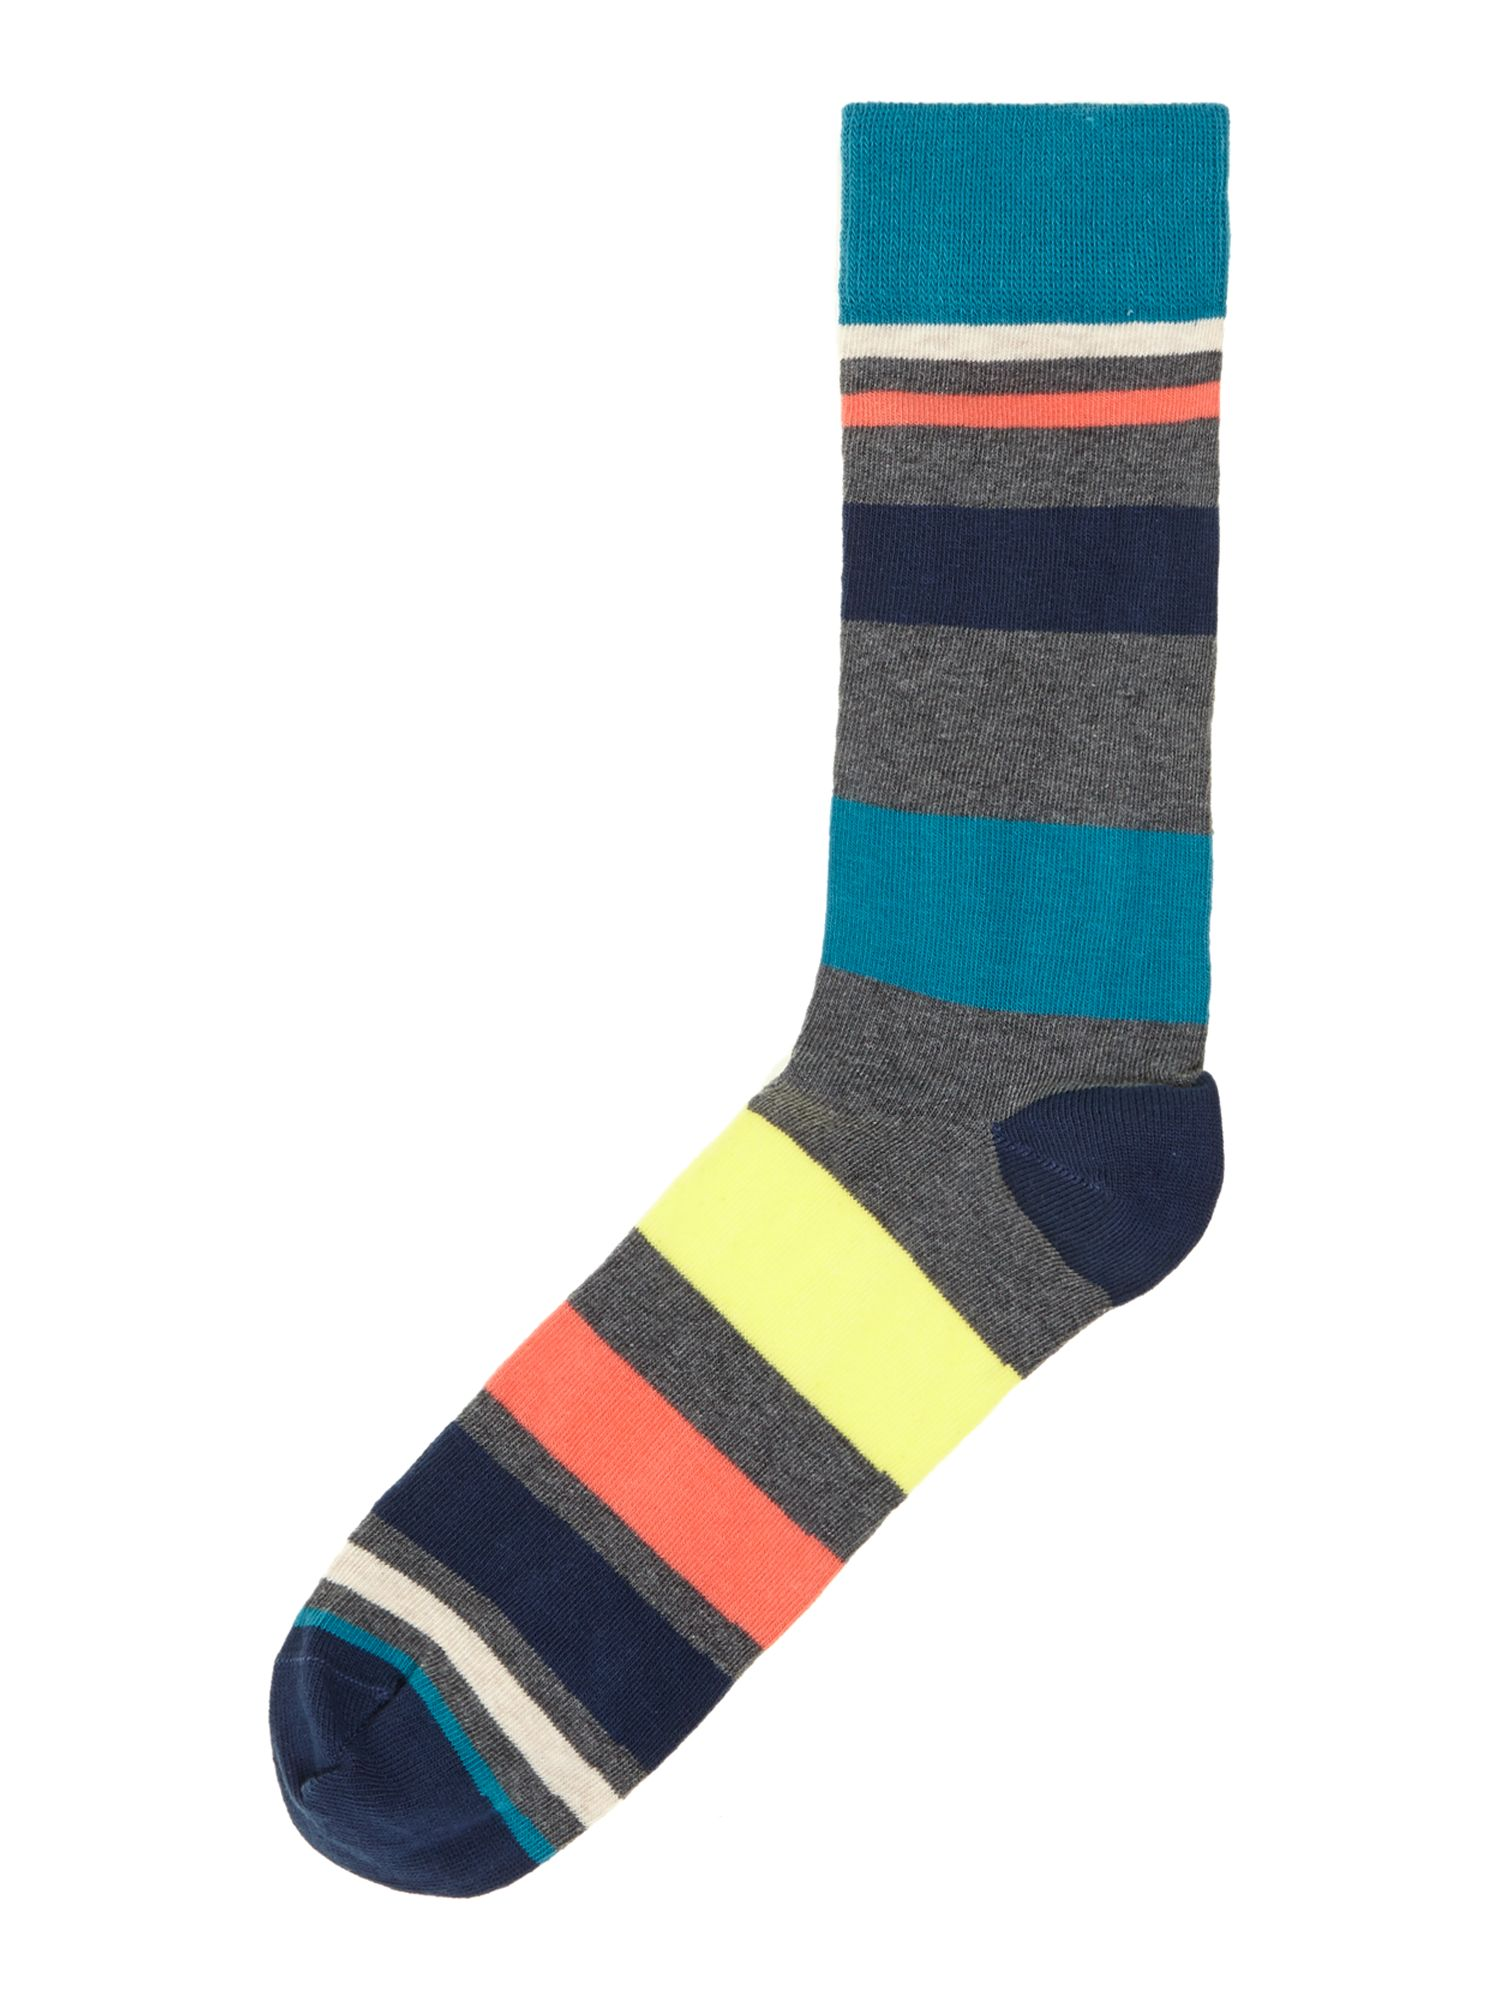 2 pack teal stripe socks